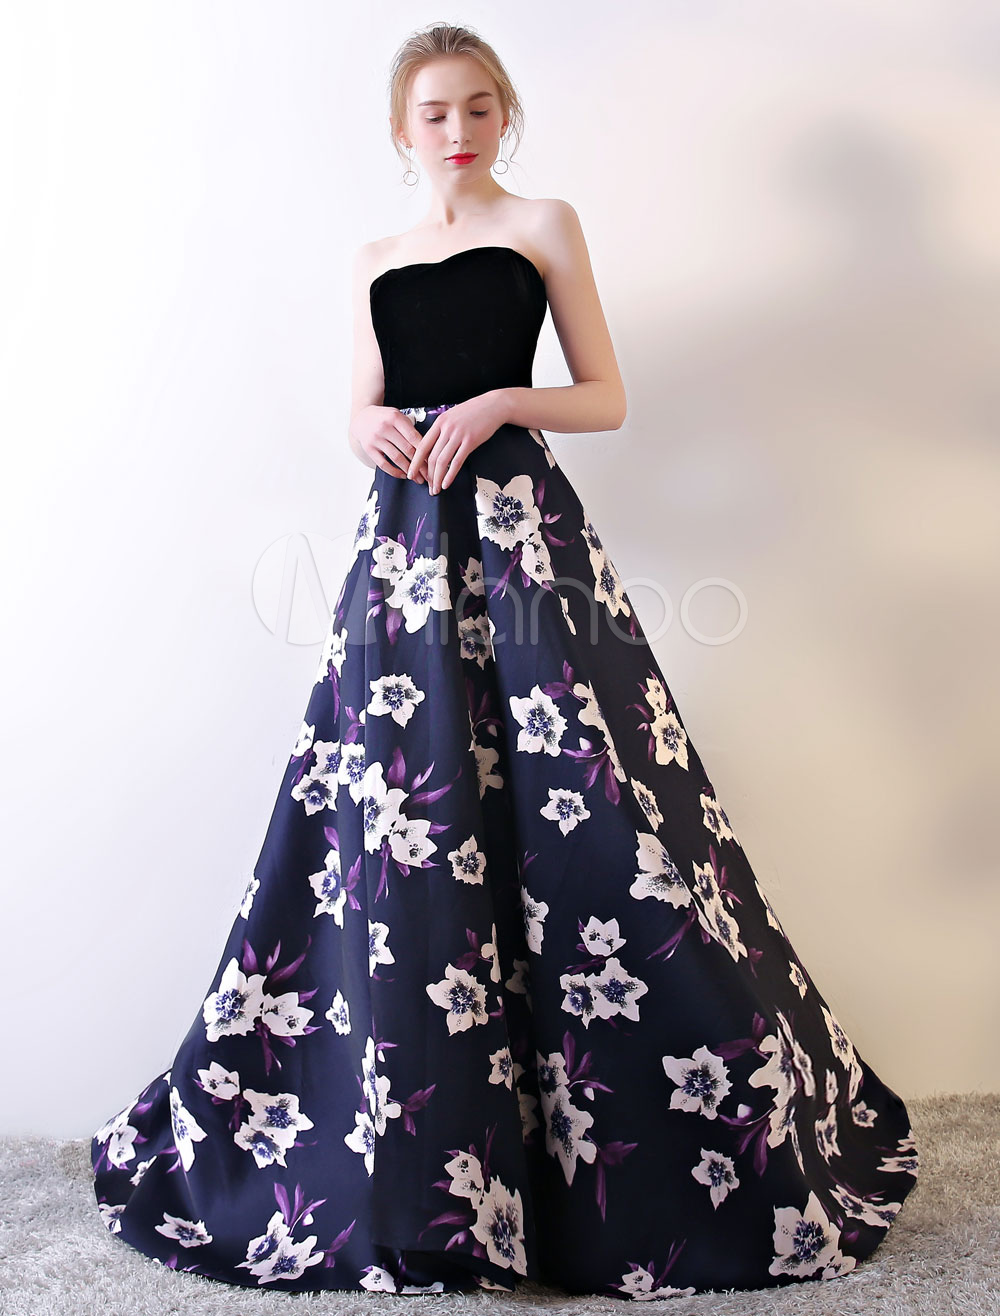 3e2b9369bf1 Strapless Prom Dress Black Floral Print Prom Gown Velvet Satin Sweetheart  Neckline Formal Occasion Dress With Train - Milanoo.com